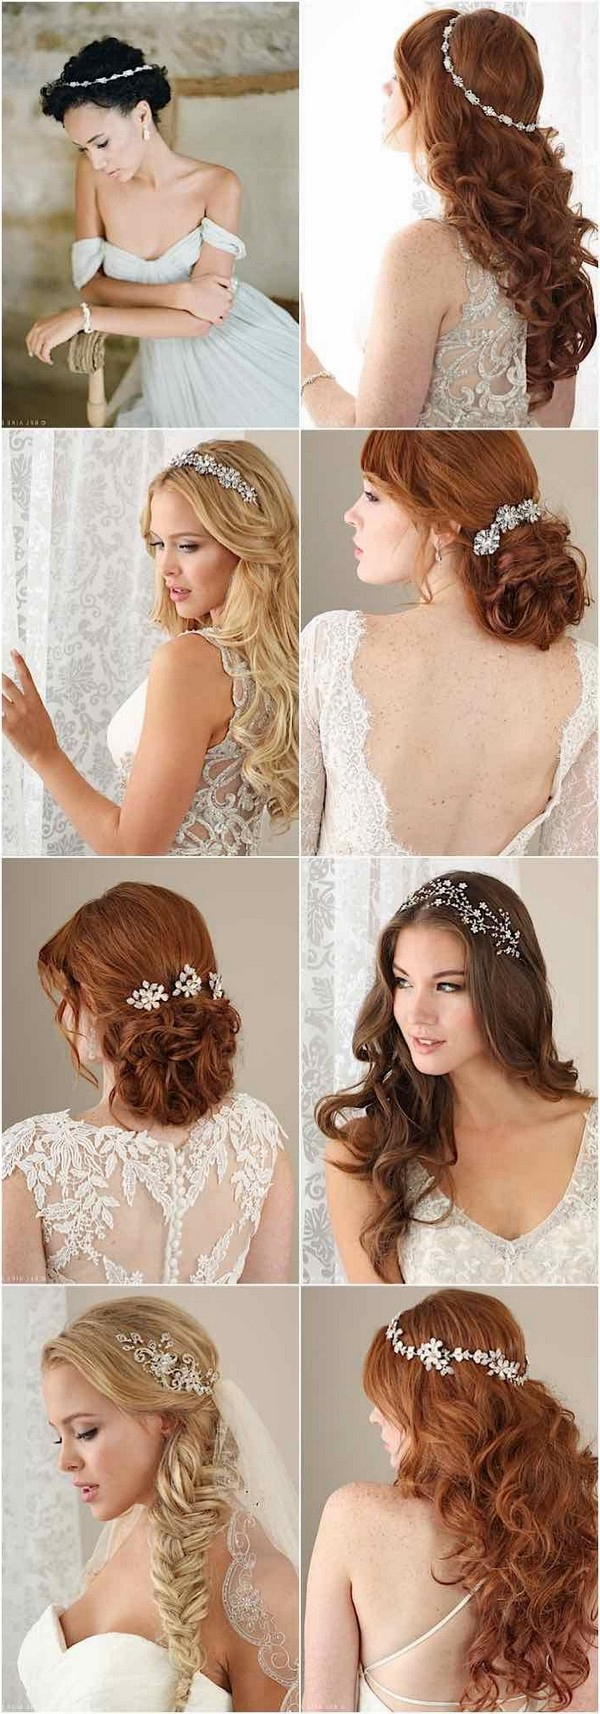 Cly And Elegant Wedding Hairstyles